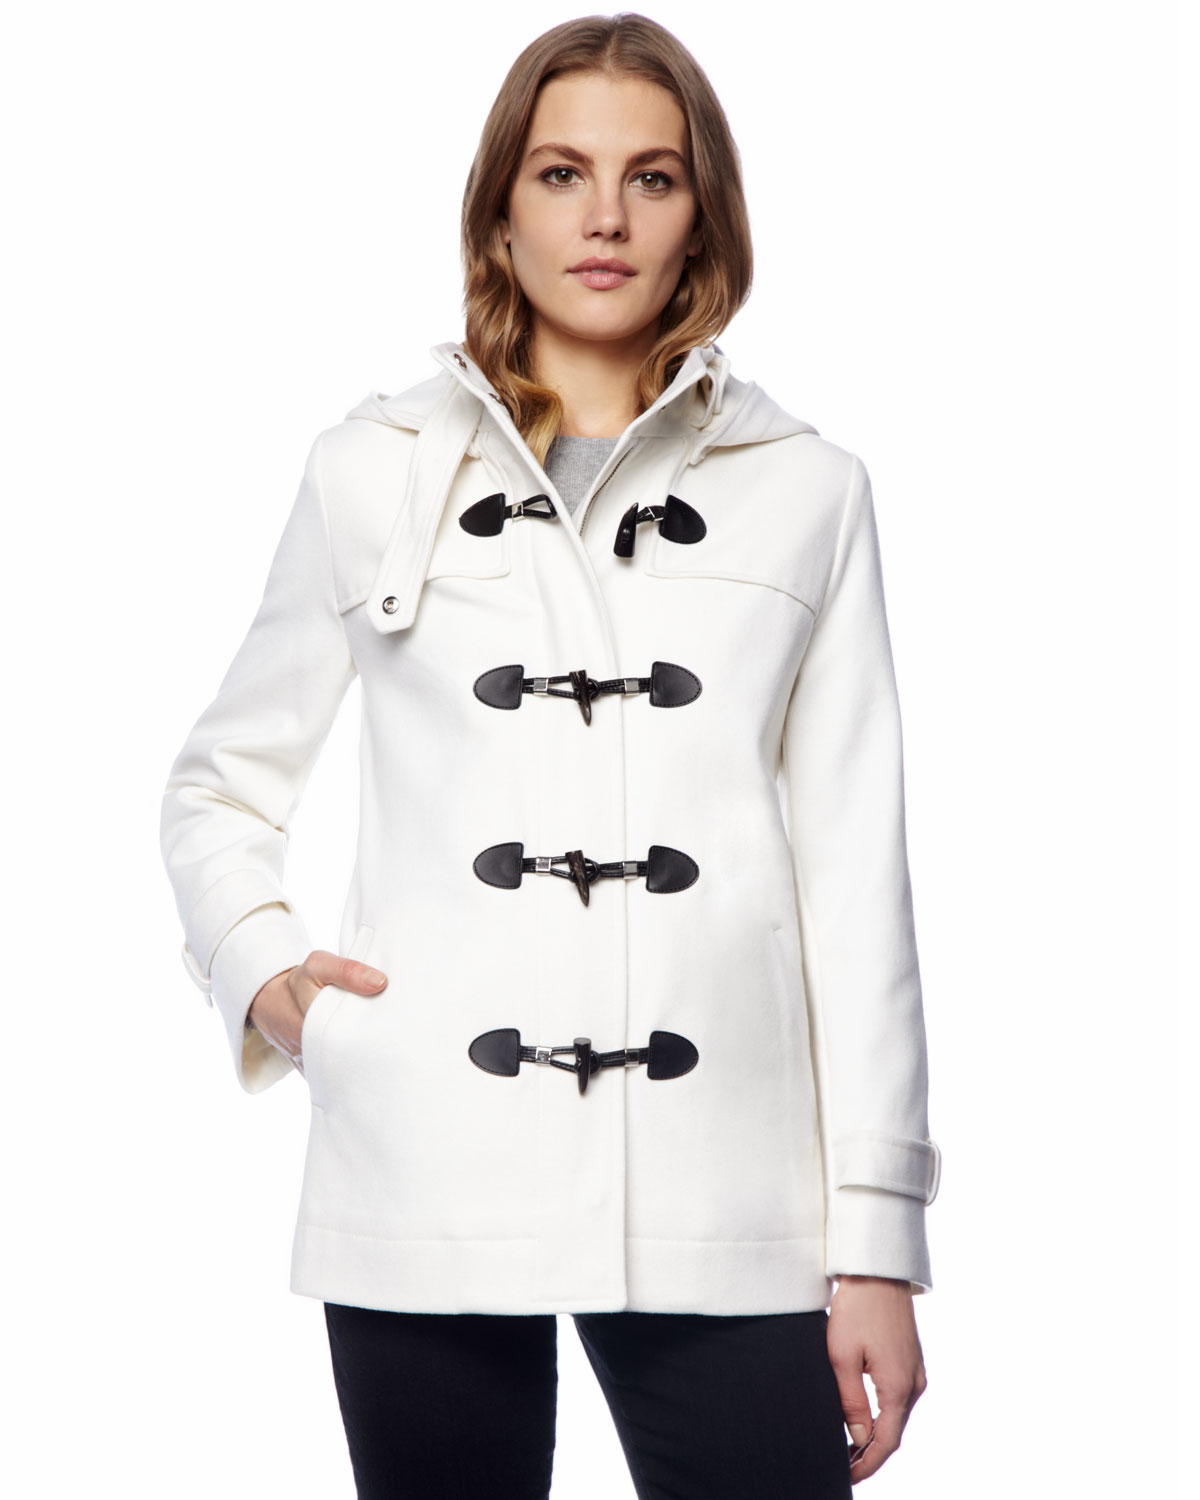 Michael kors Hooded Toggle Coat in White | Lyst